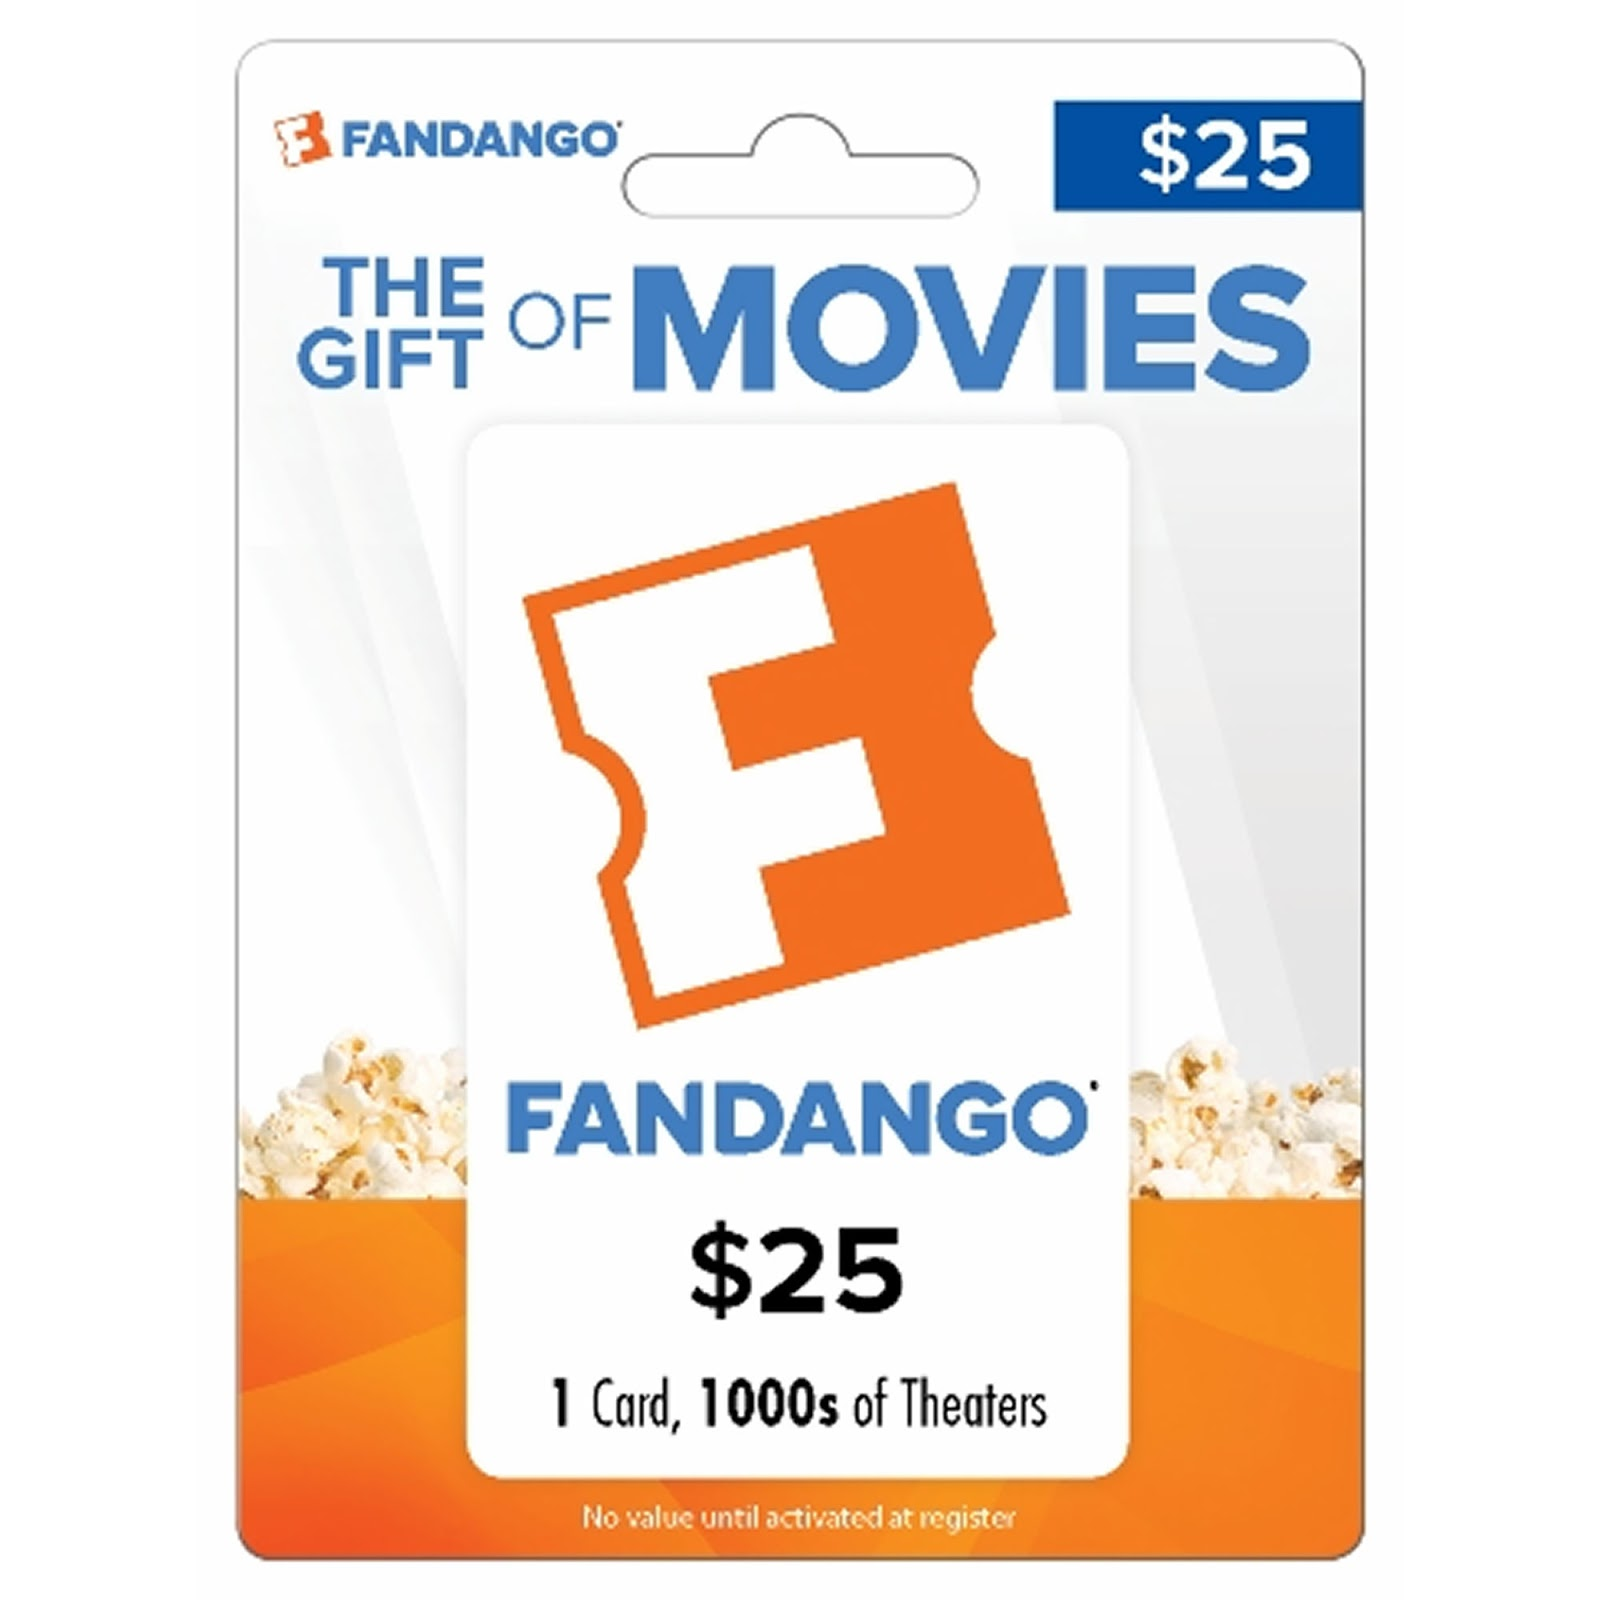 25 fandango gift card for just 1949 from bjs deals discounts 25 fundango gift card for just 1949 from bjs xflitez Gallery